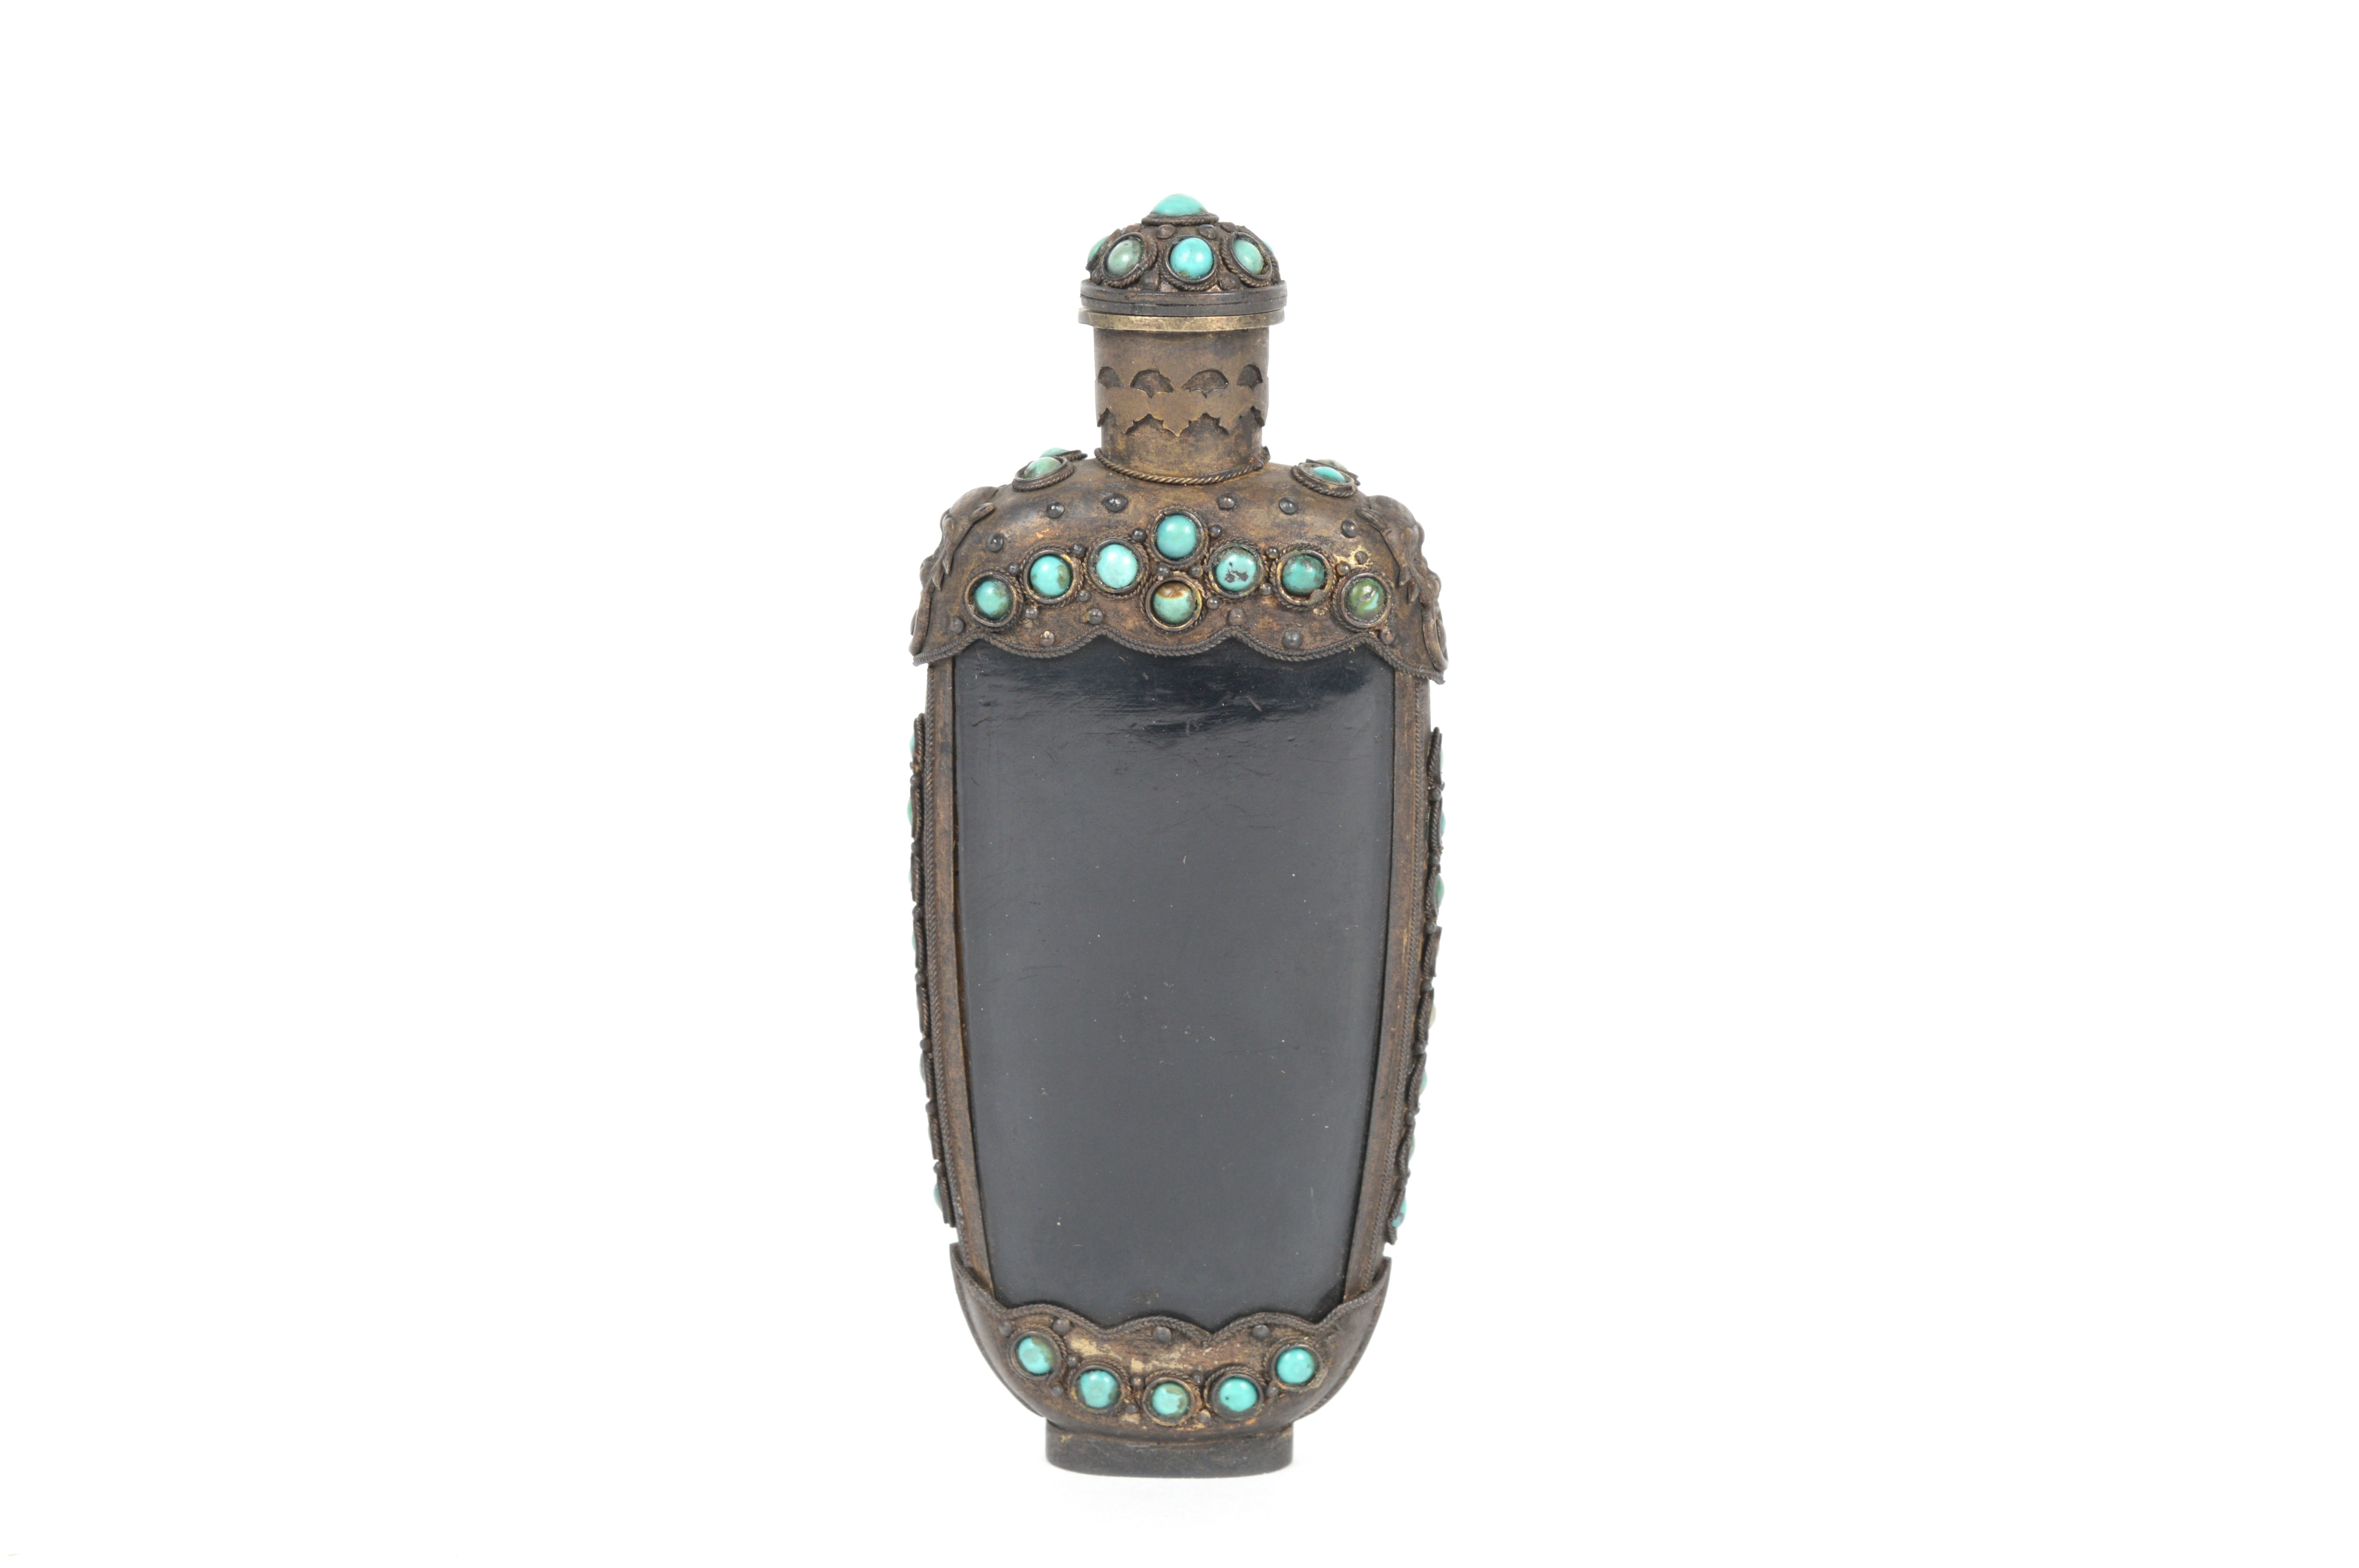 Antique Brass and Bone Snuff Bottle With Turquoise Accents